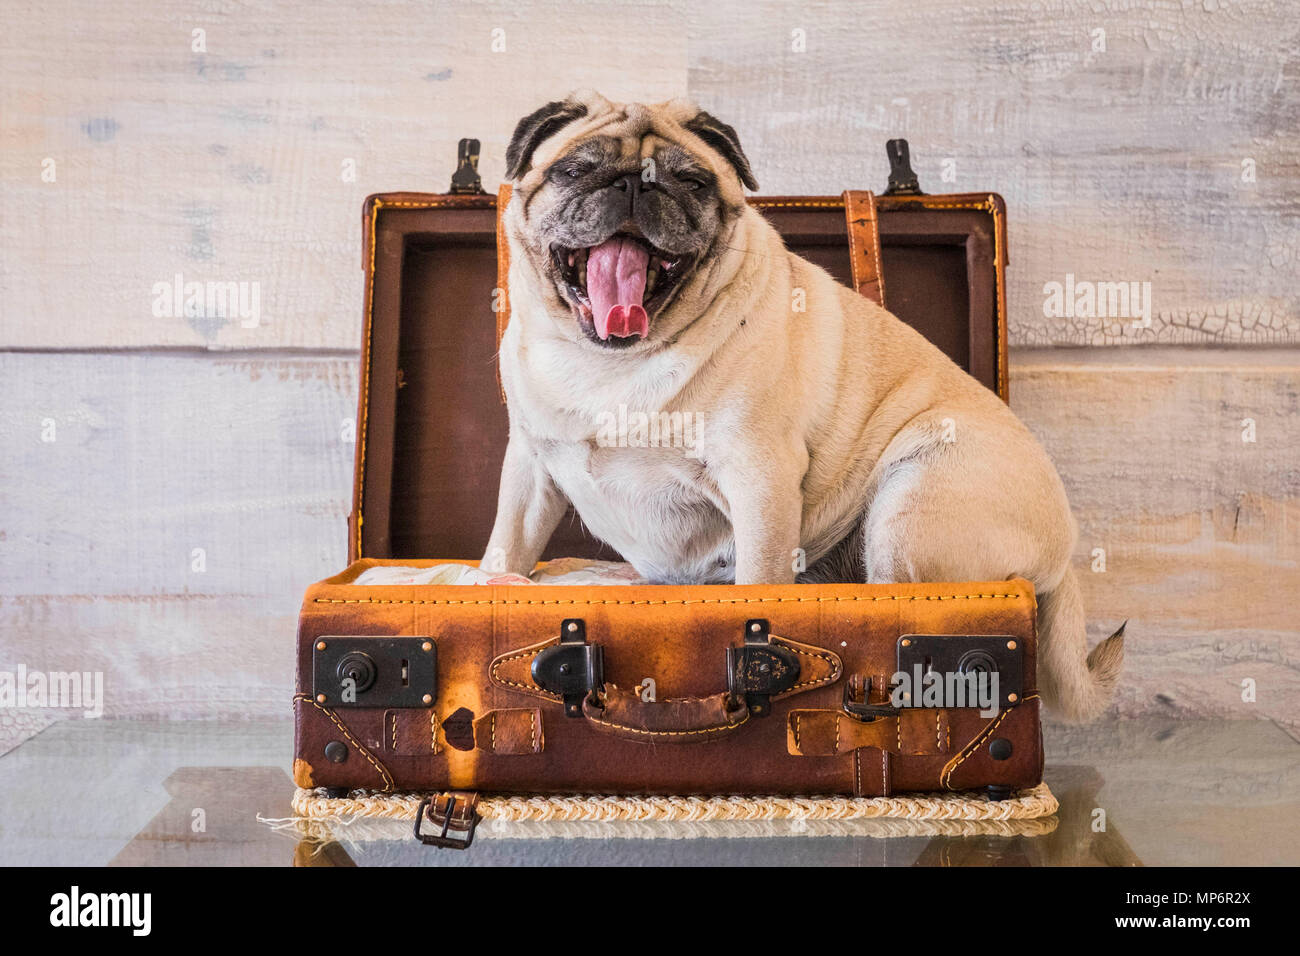 nice funny pug dog lazy sleep on the 24 hour luggage ready to travel but bored and tired with wall on the background. old vintage trolley and image, j Stock Photo